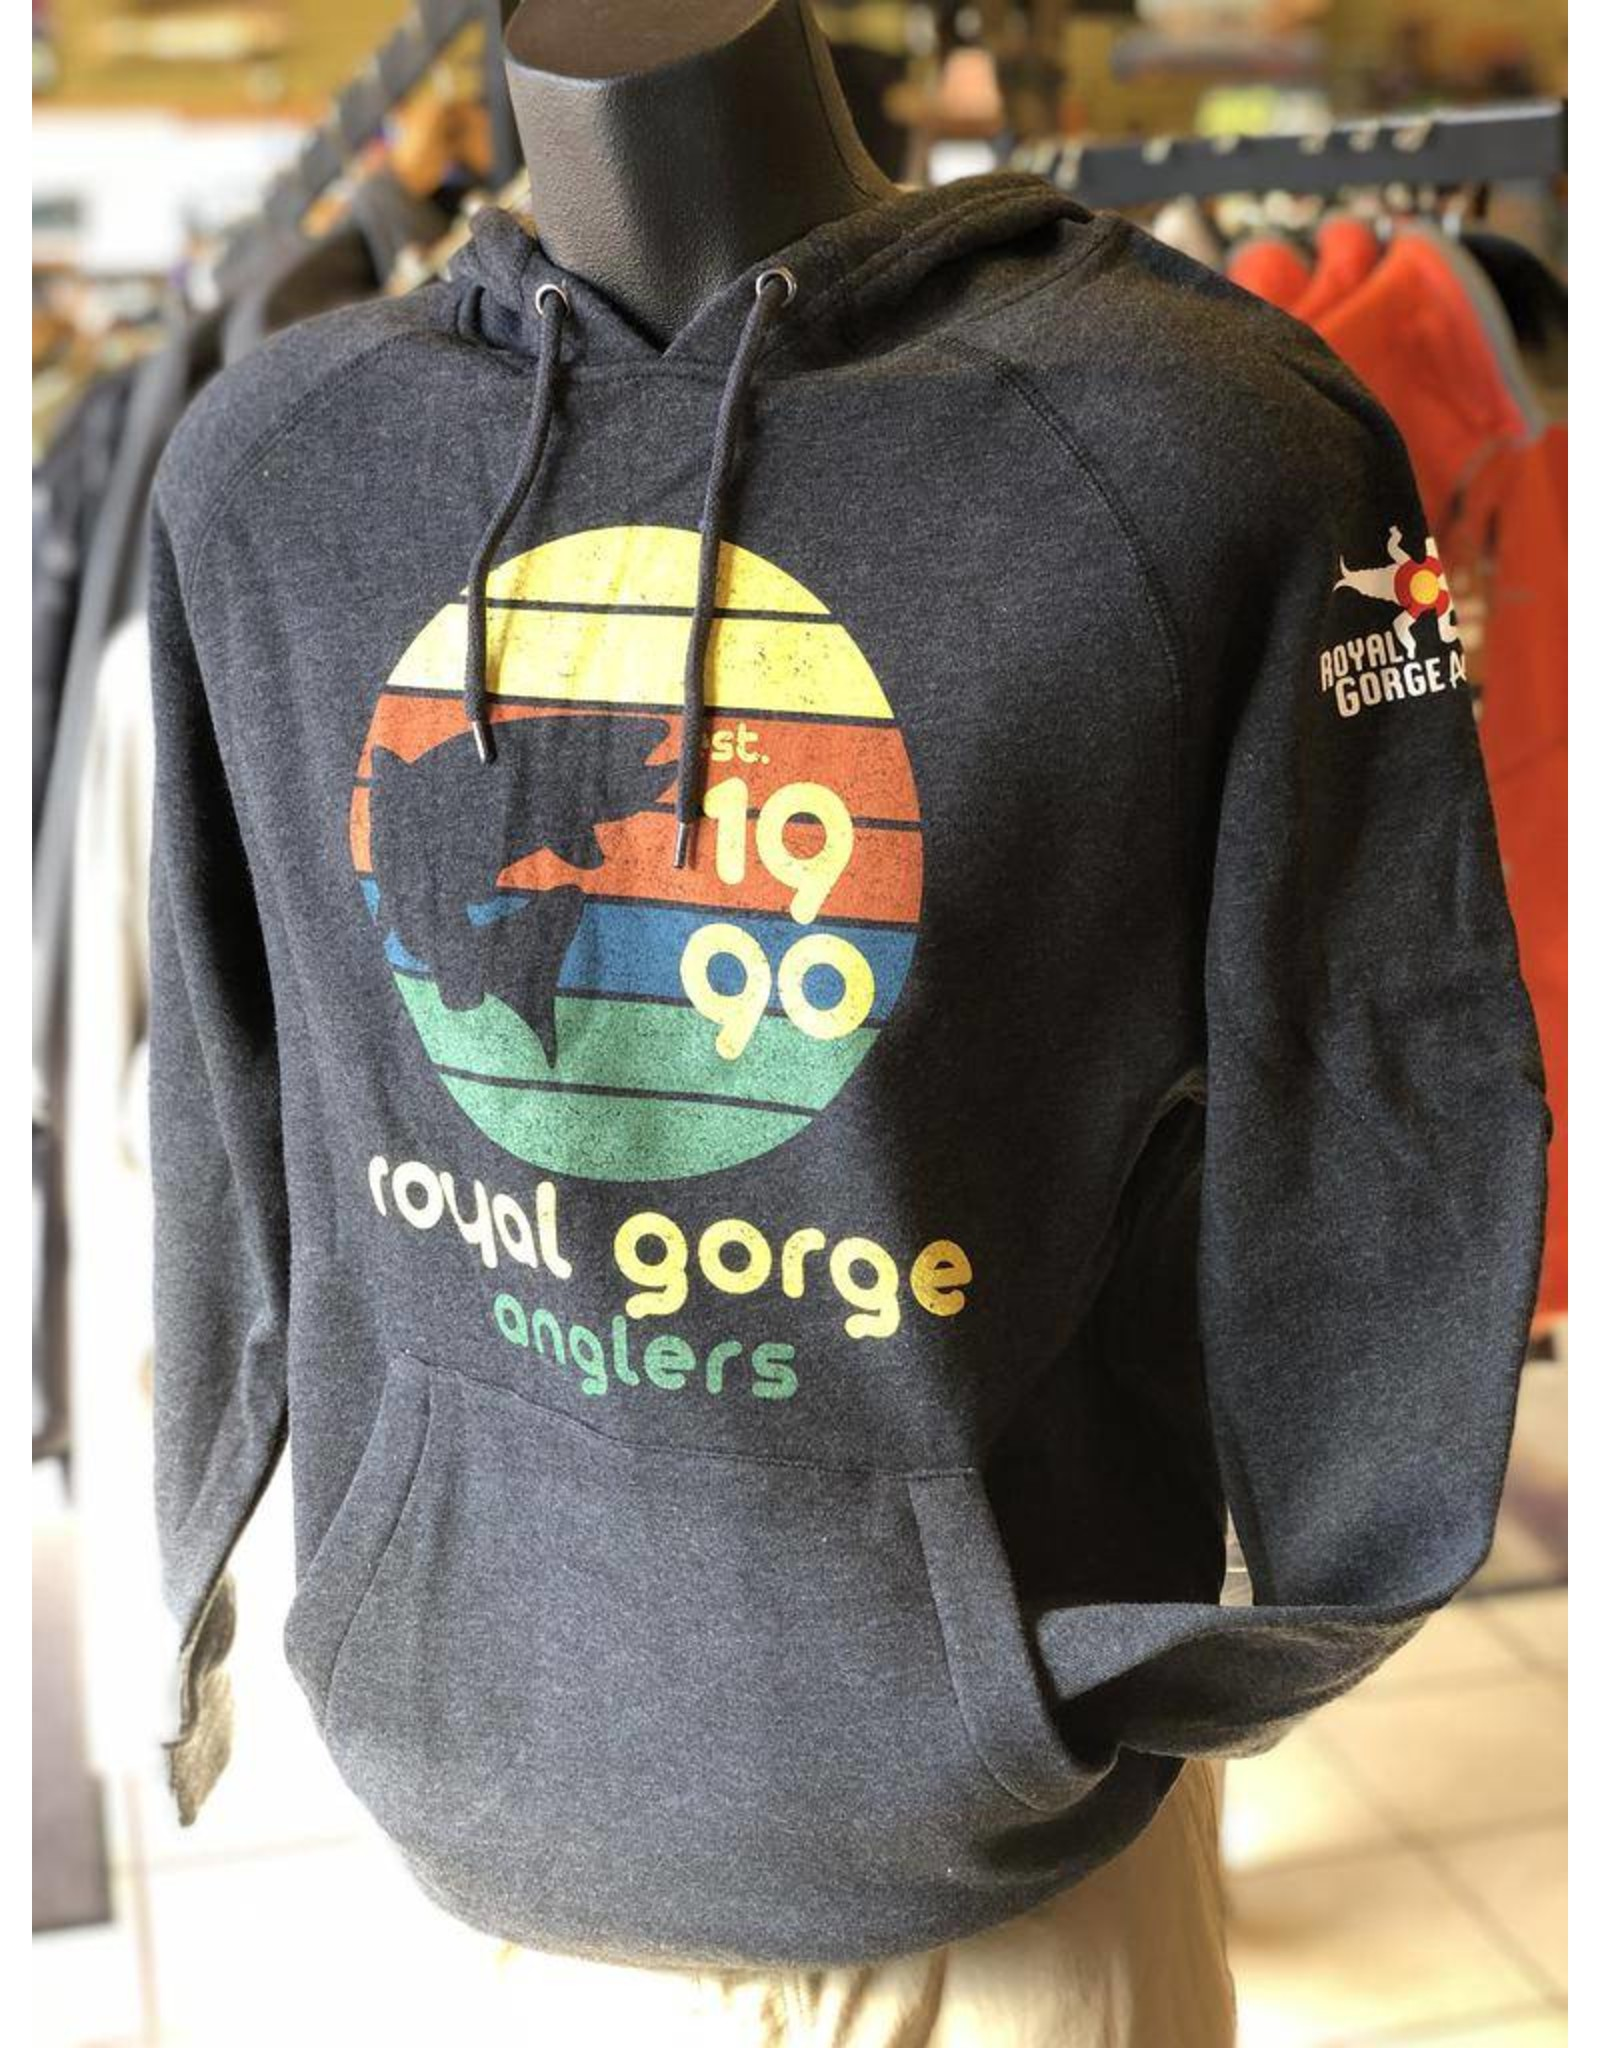 A comfortable everyday hoody to show your fly fishing pride!